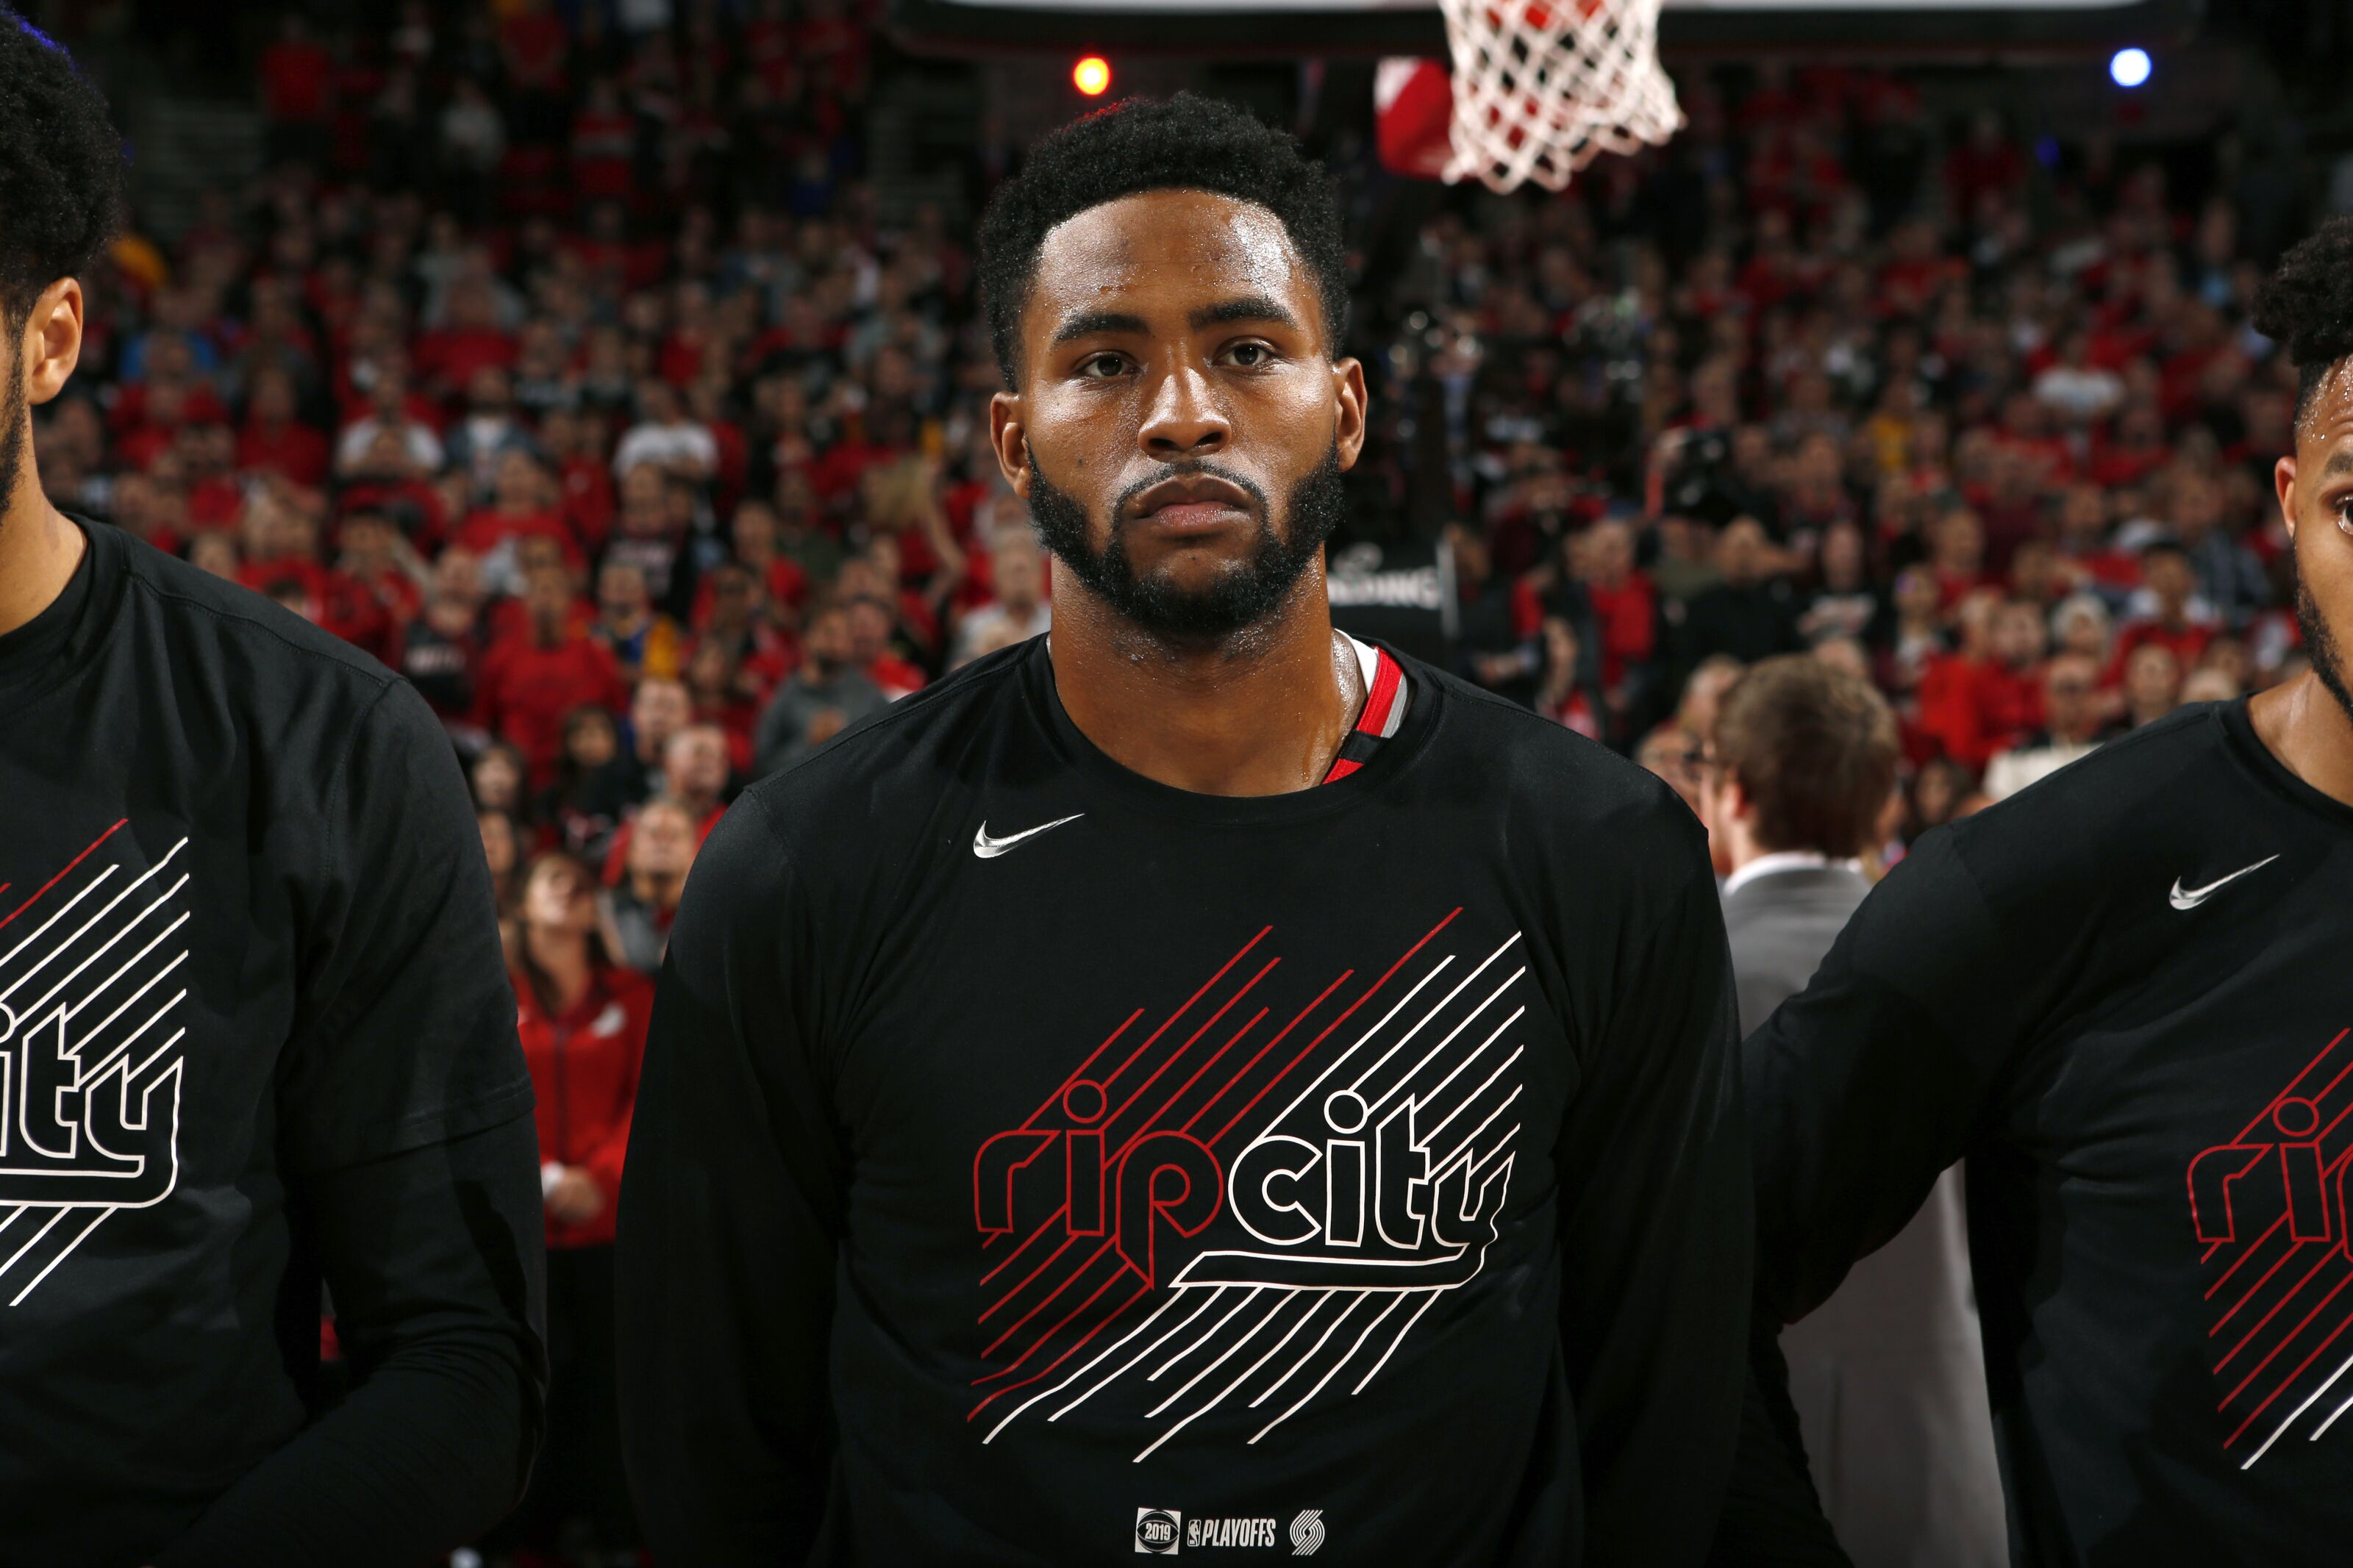 LA Clippers: We know who can play, but who can slay?